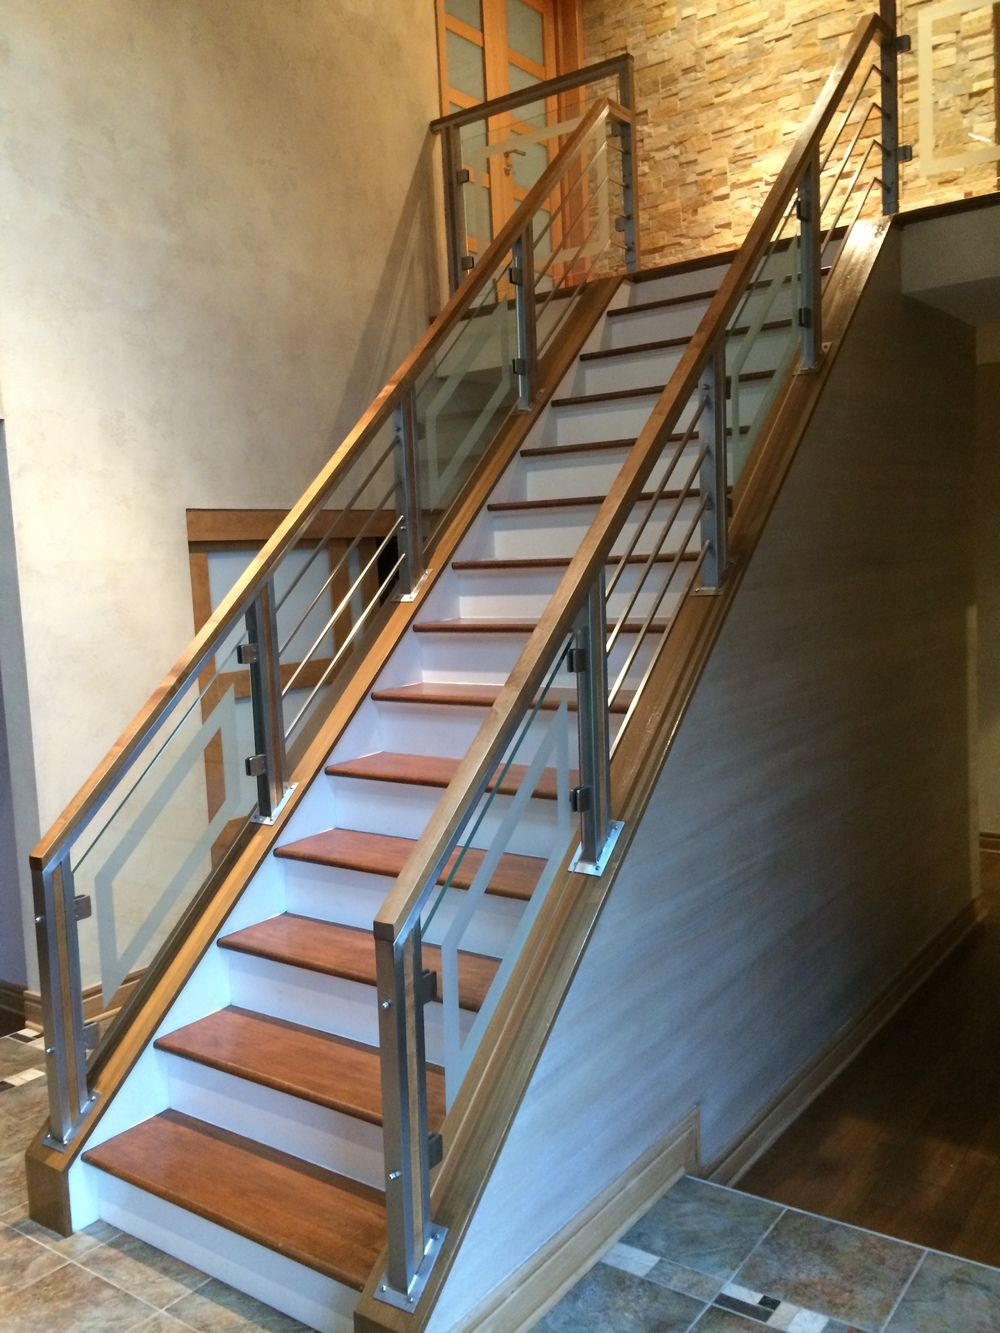 Stainless Steel Horizontal Rods And Glass Railing With Wood